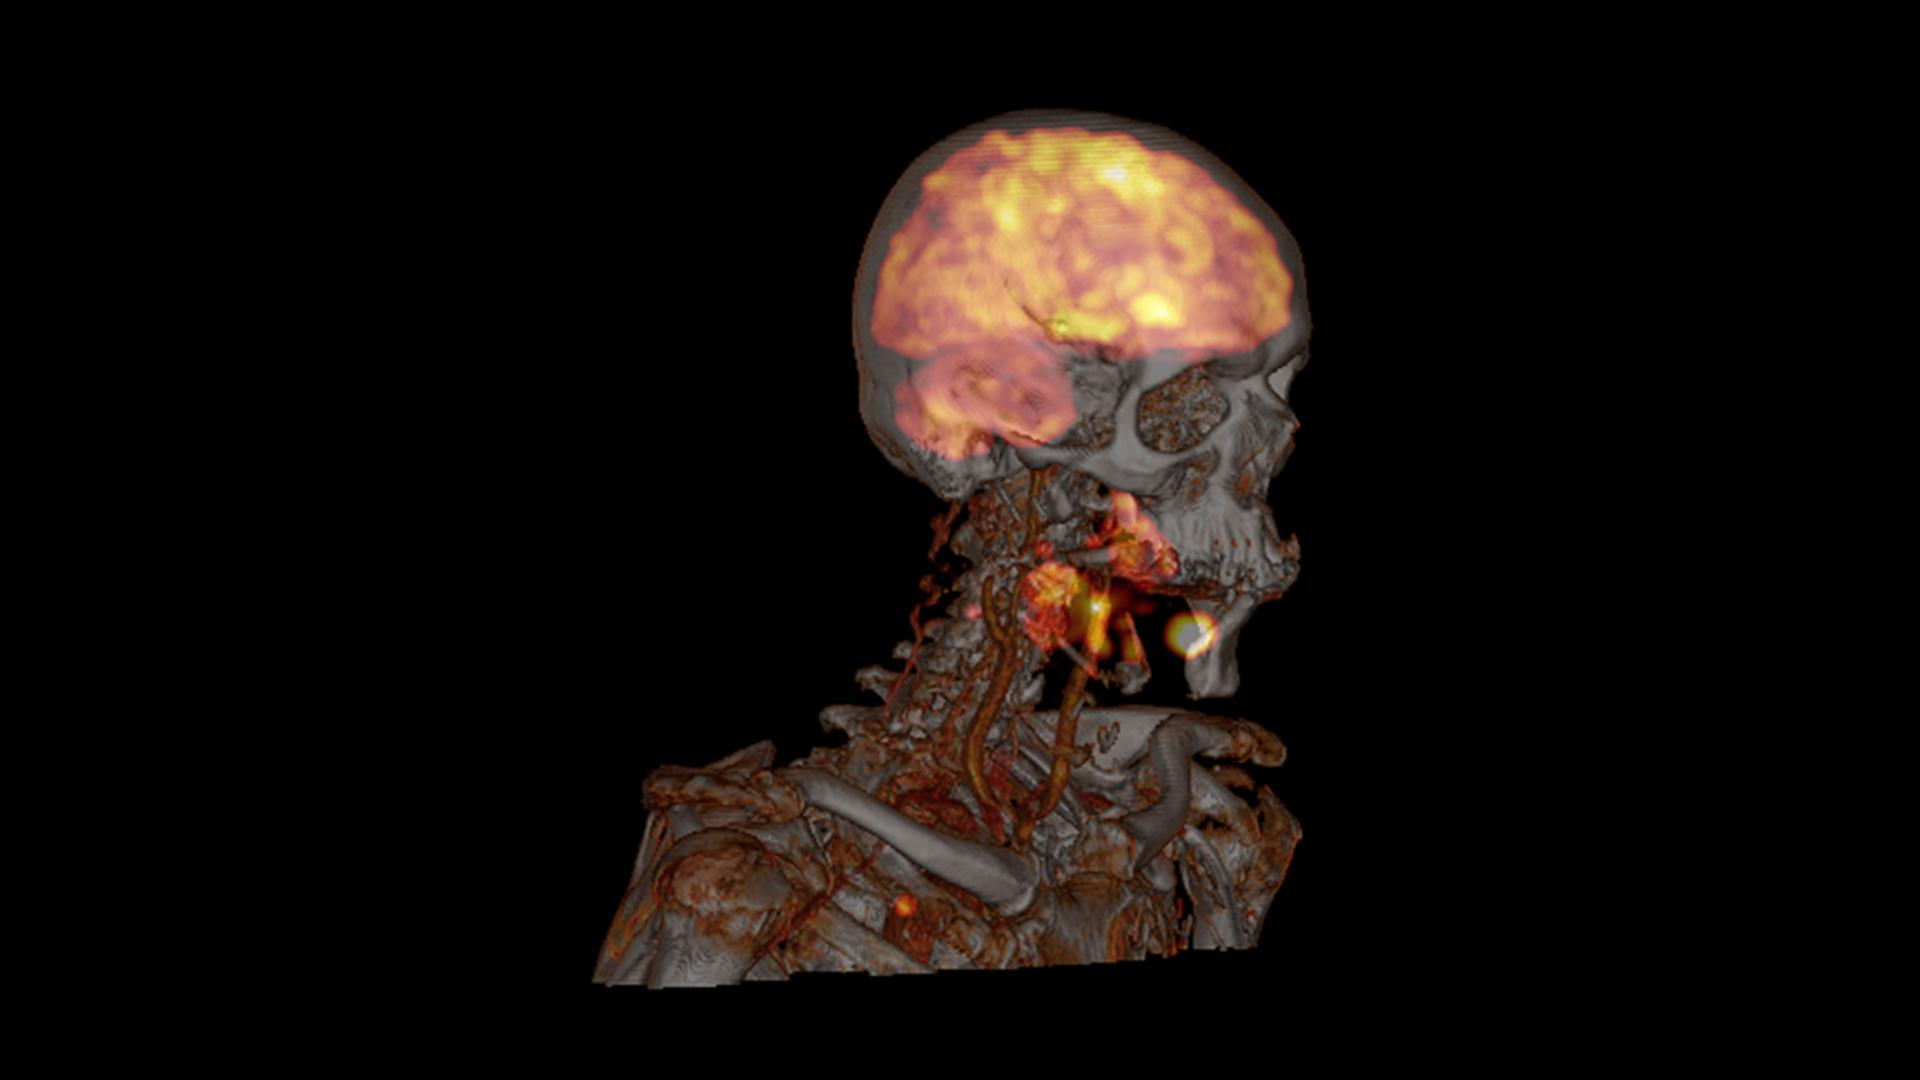 Erlanger head and neck PET/CT case study.